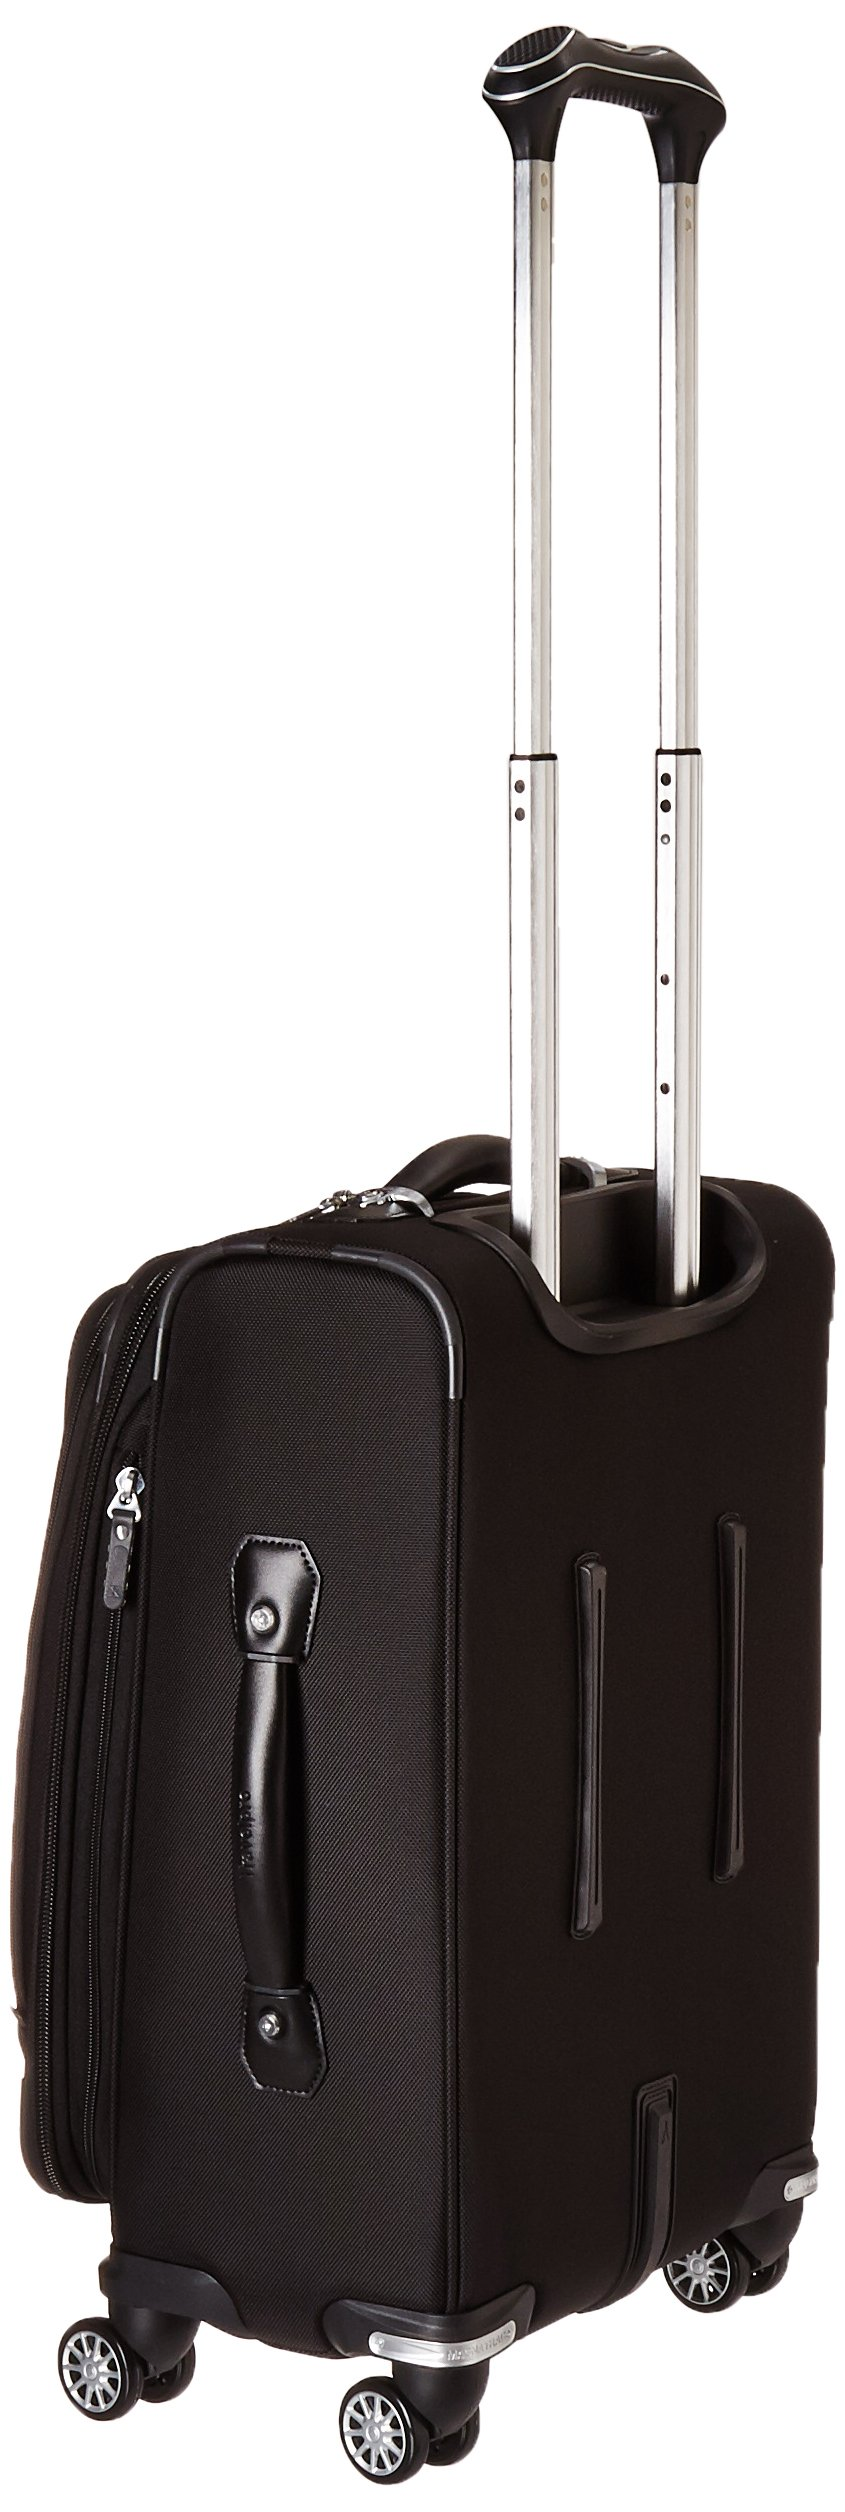 "Travelpro Platinum Magna 2  20"" Expandable Business Plus Spinner, Black by Travelpro (Image #2)"